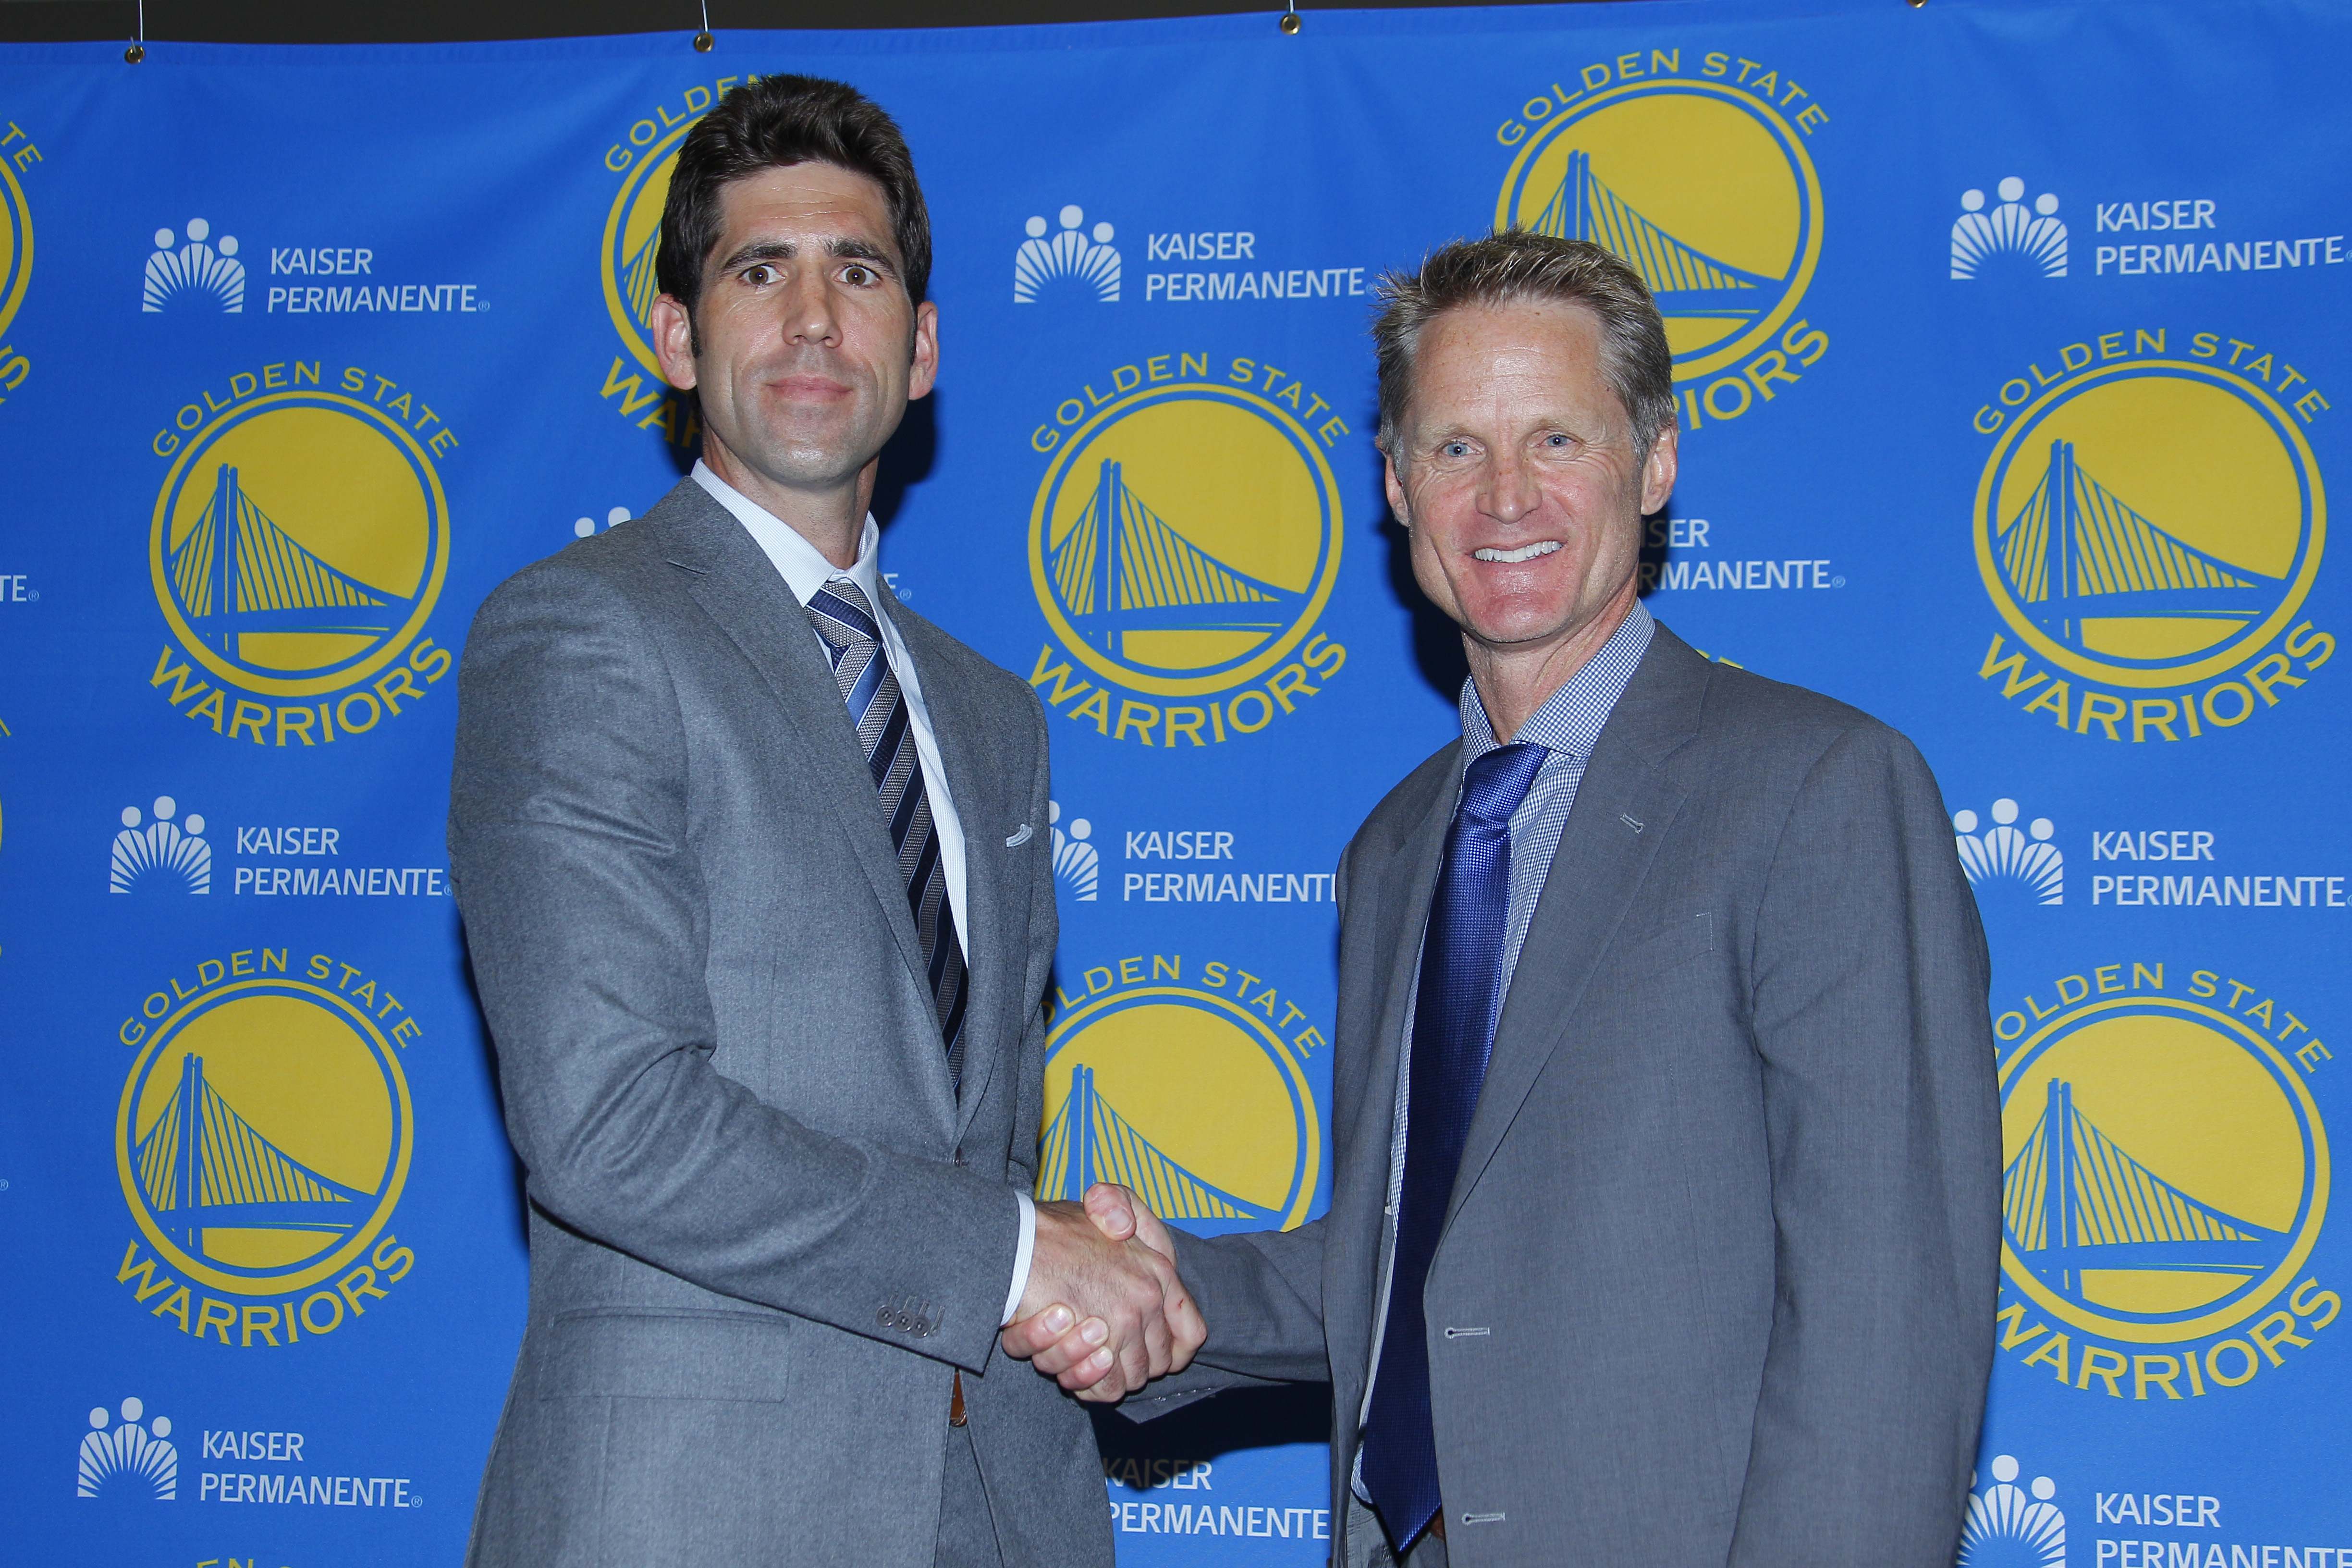 OAKLAND, CA - MAY 20: Steve Kerr of the Golden State Warriors shakes hands with General Manager Bob Myers at a press conference on May 20, 2014 in Oakland, California. (Photo by Rocky Widner/NBAE via Getty Images)